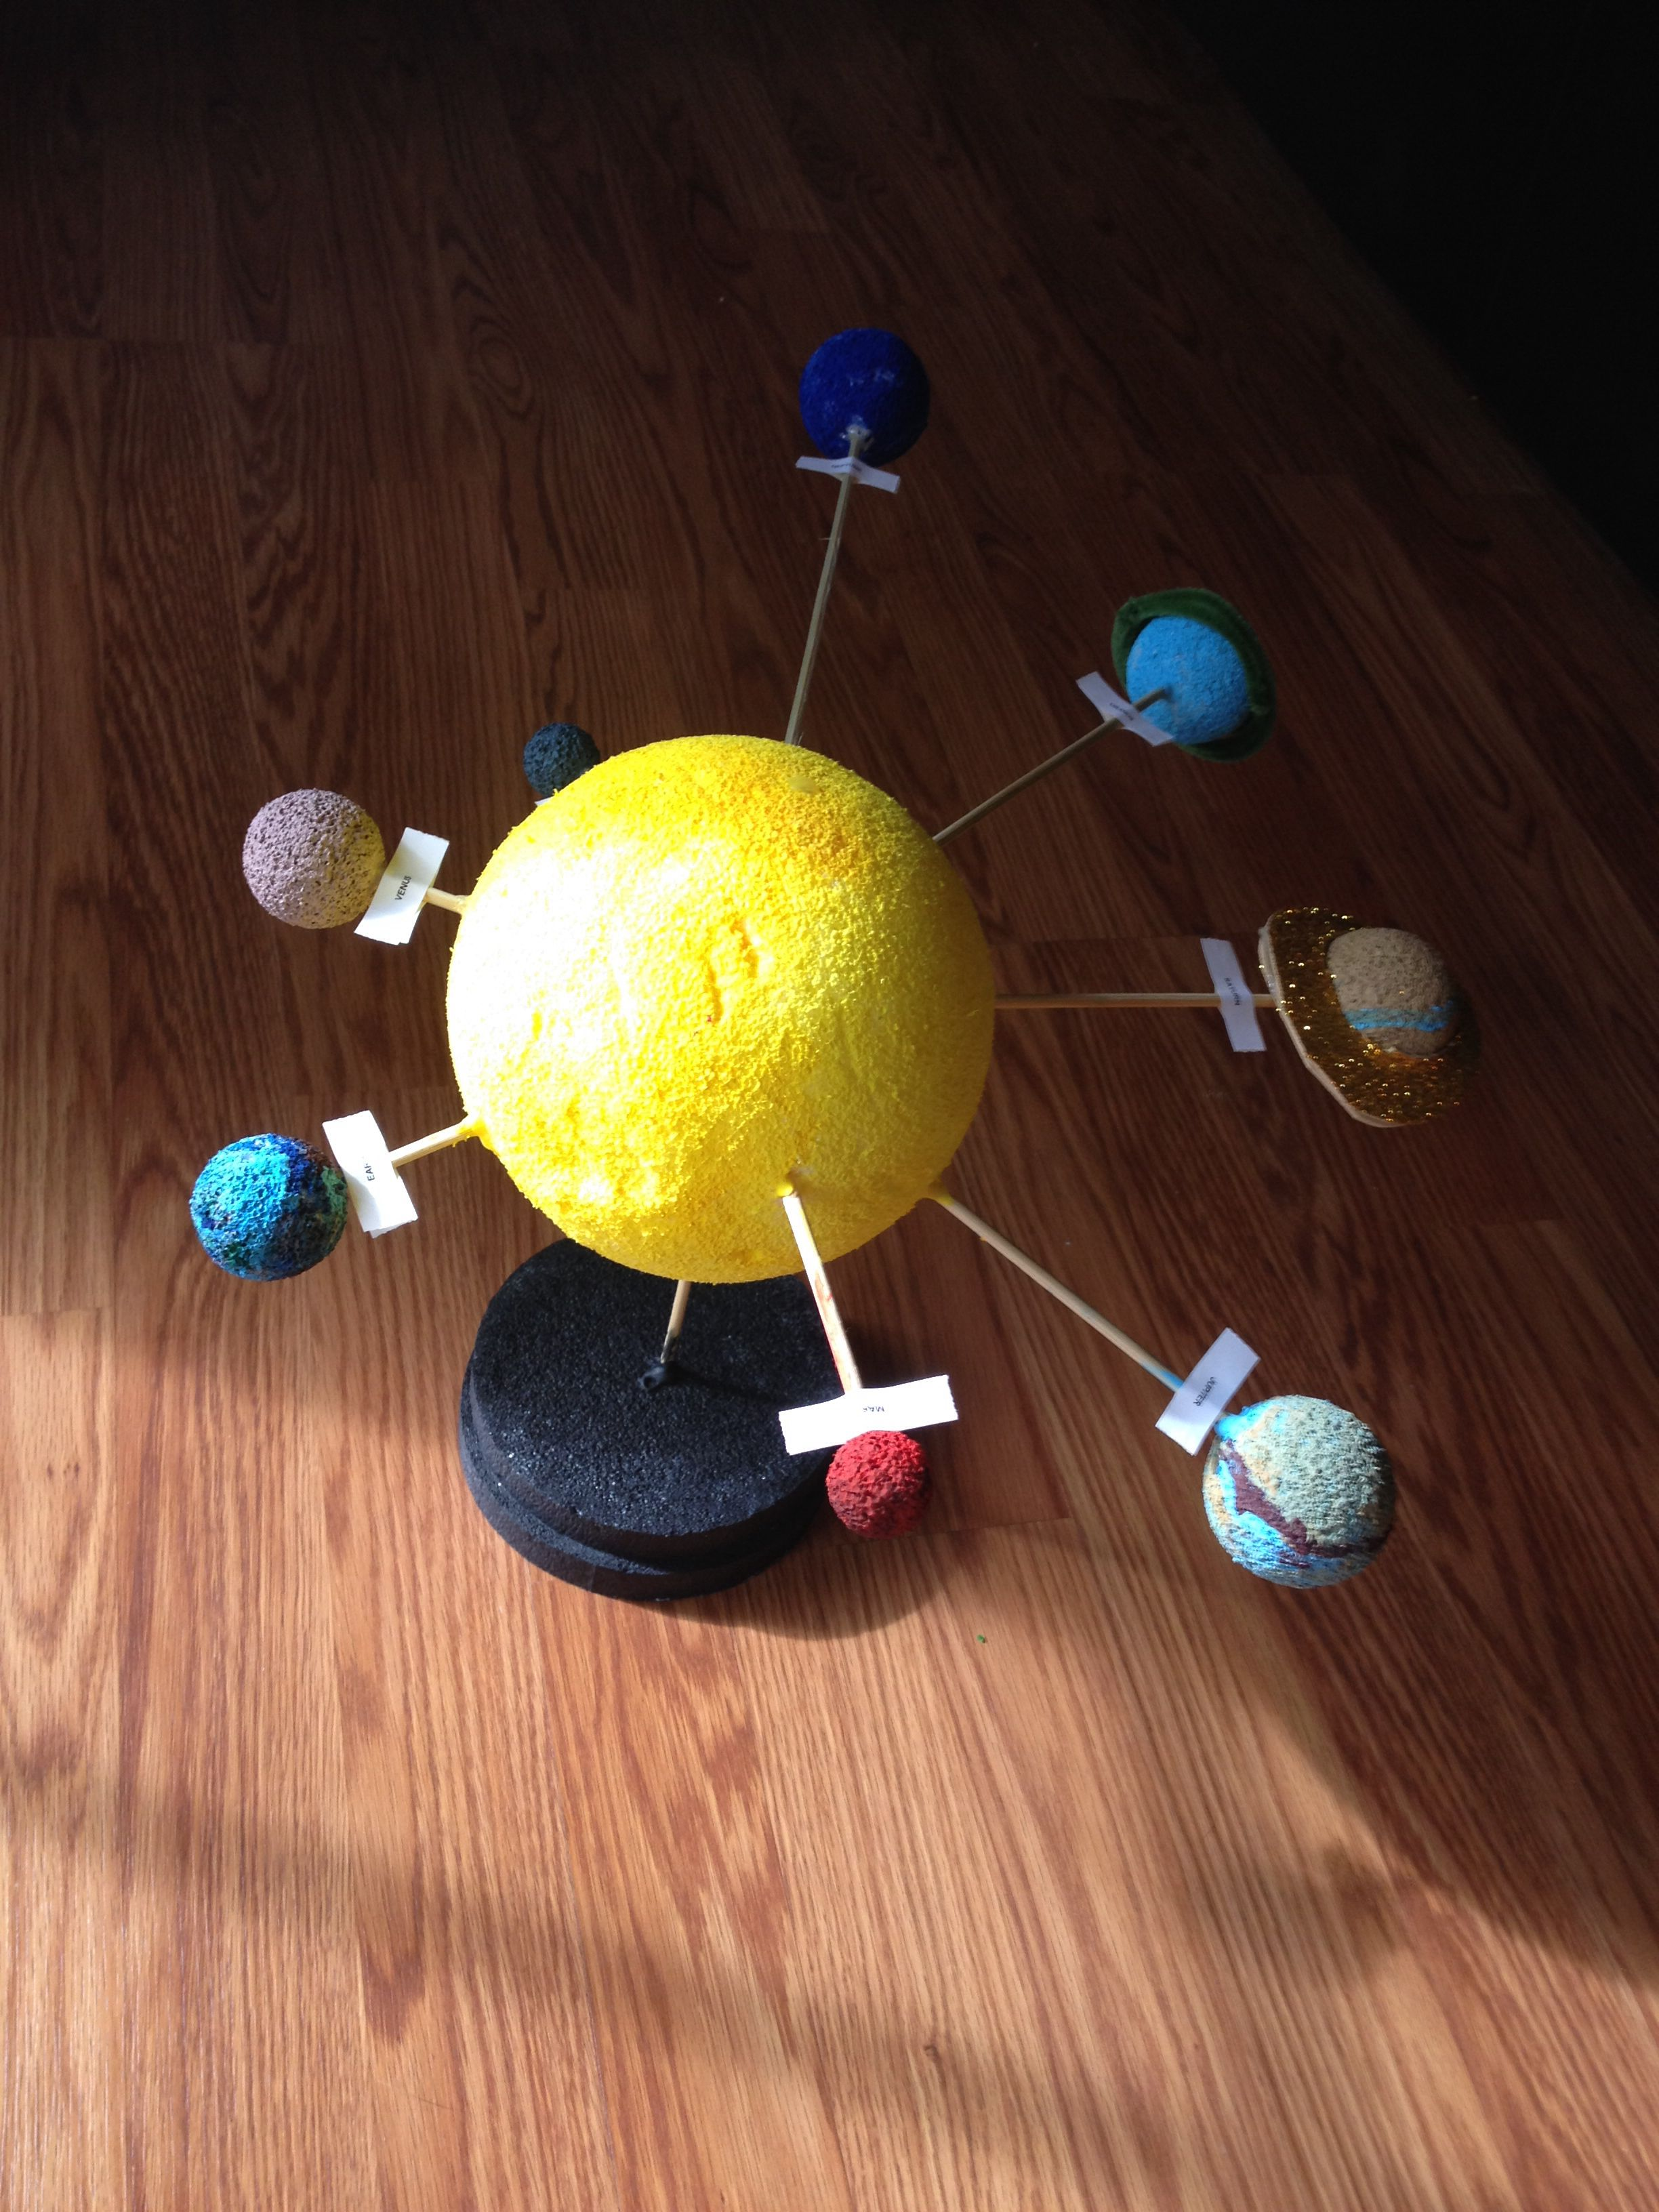 3d solar system school project - photo #26